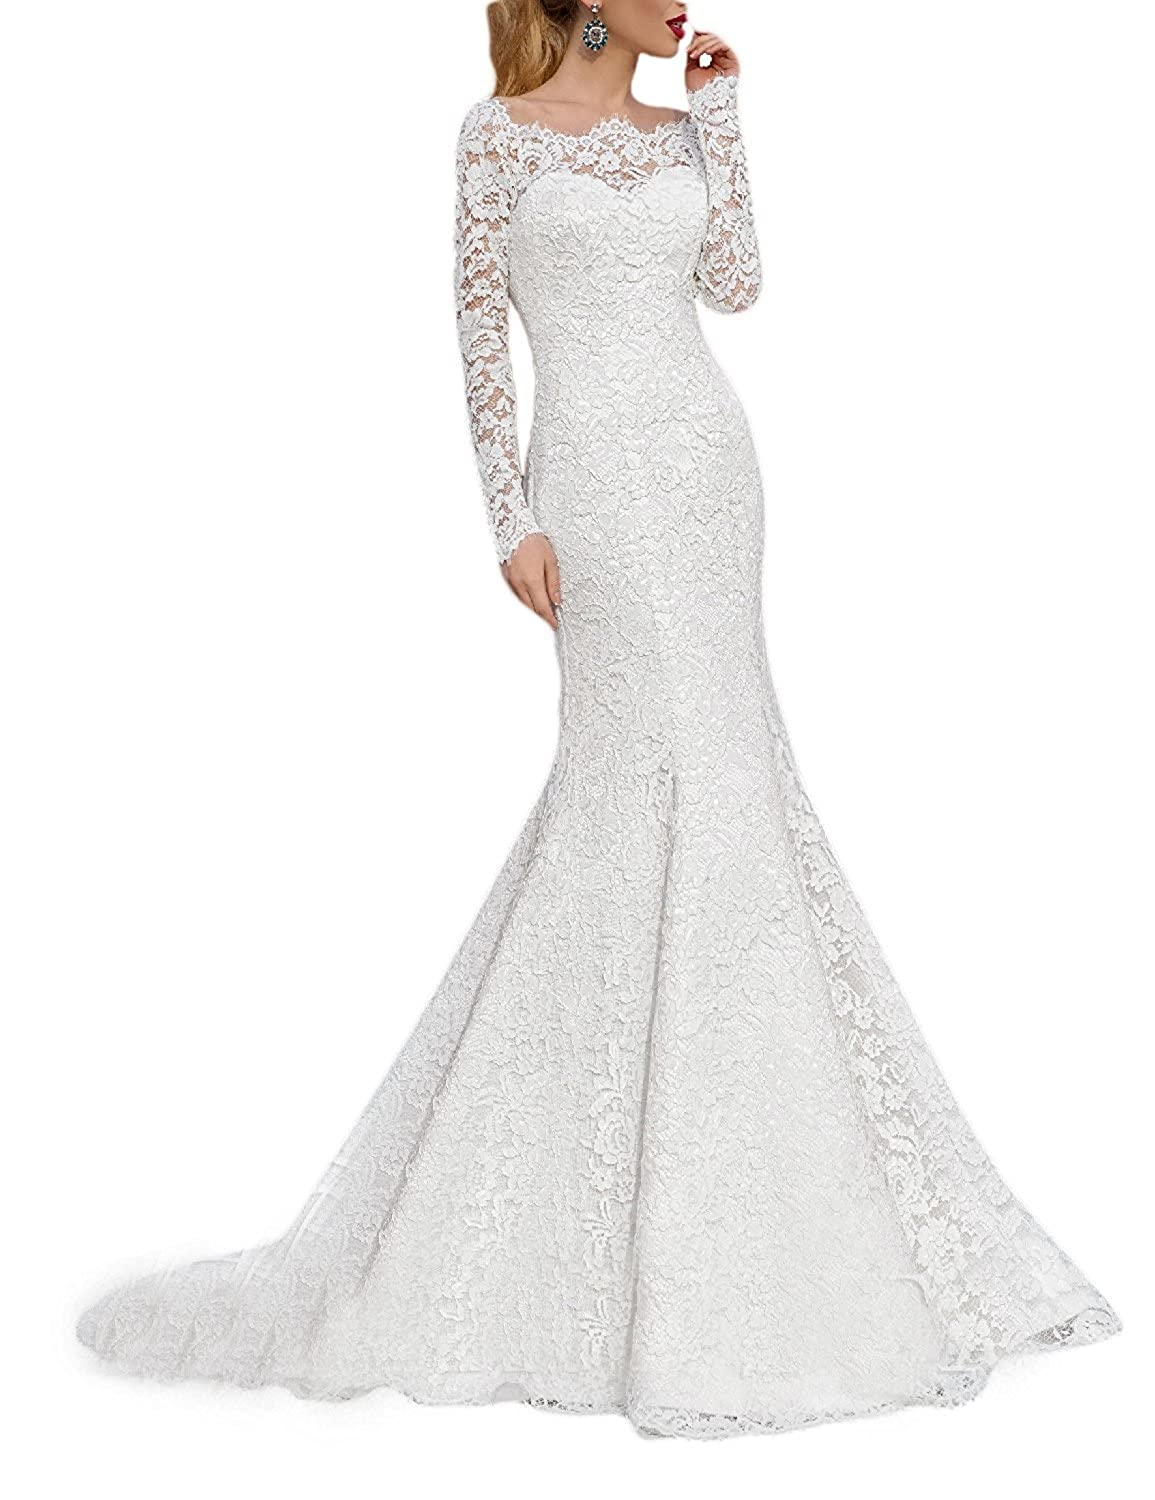 Cloverdresses Long Sleeves Mermaid Wedding Party Dresses For Womens